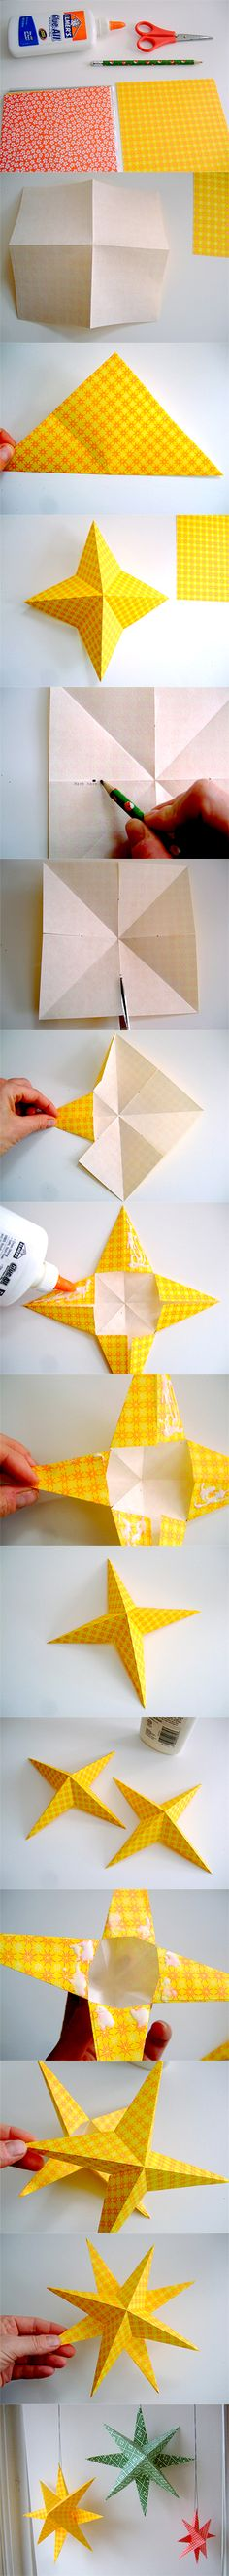 we are all made of stars http://annekata.blogspot.com/2010/11/tutorial-super-simple-paper-stars.html